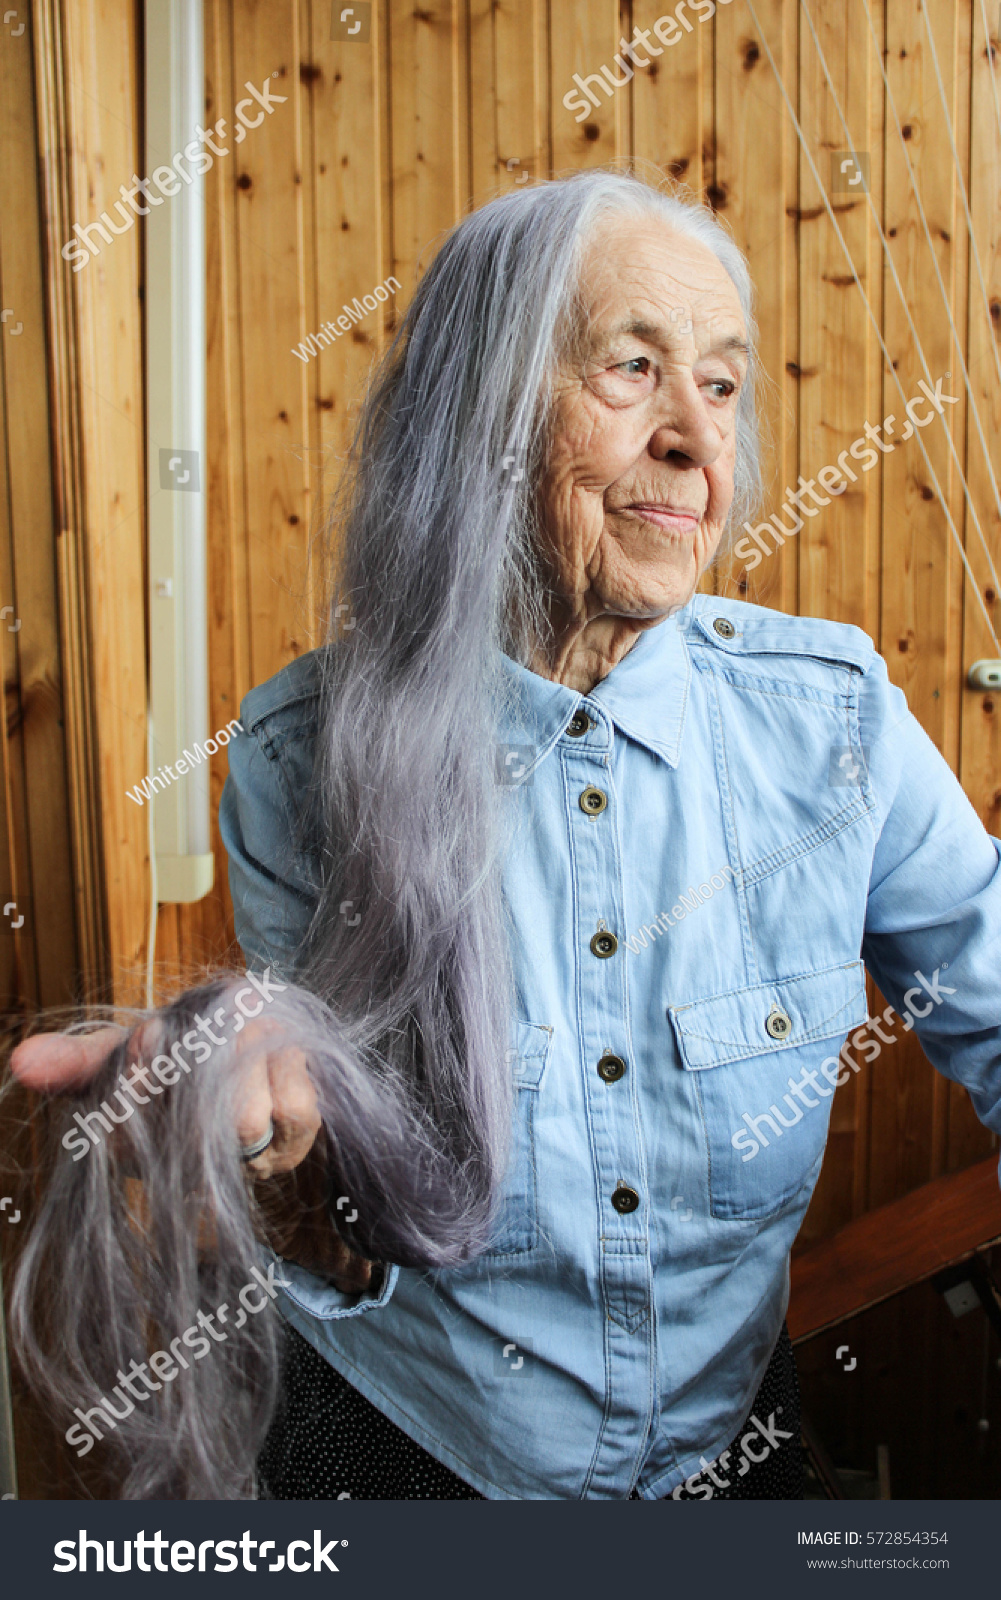 Old Woman Long Gray Hair Stock Photo Edit Now 572854354 Shutterstock